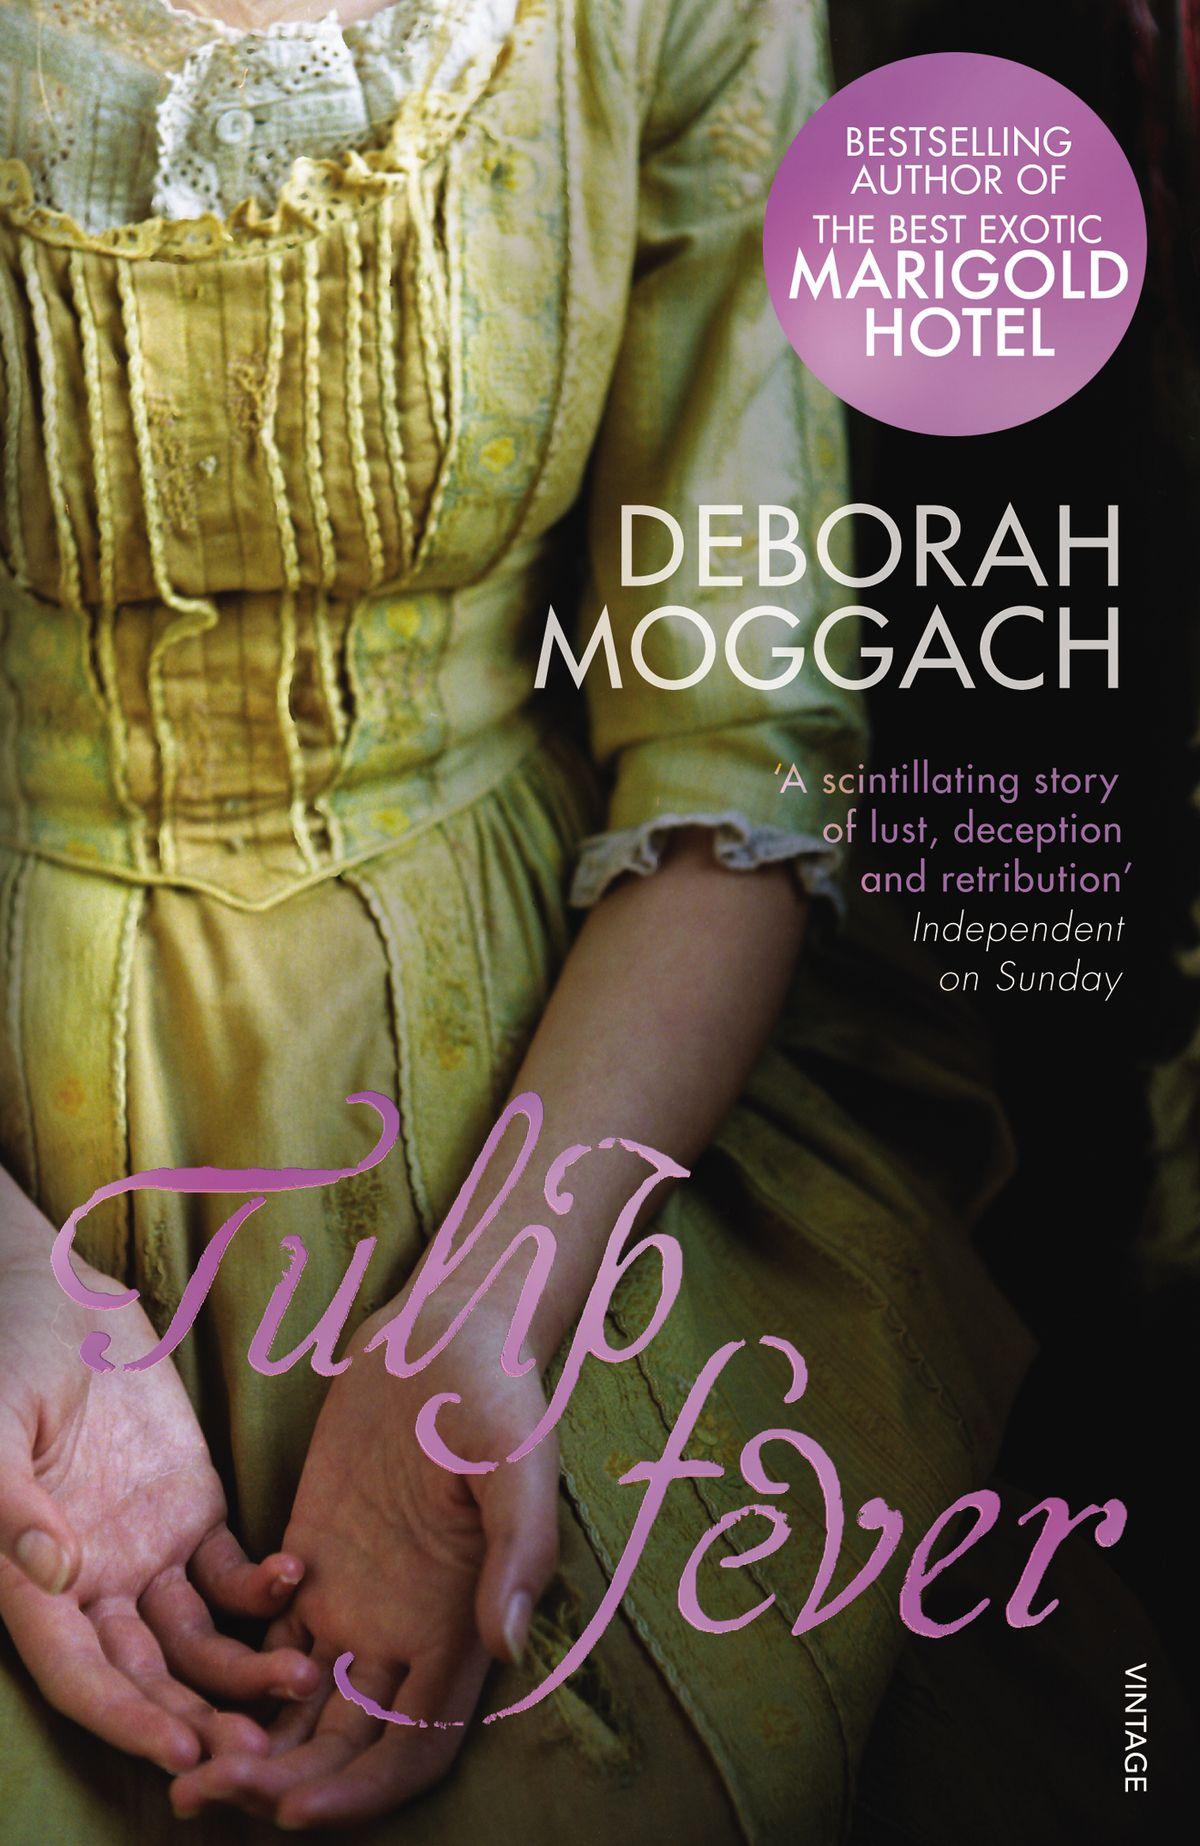 The cover of Tulip Fever